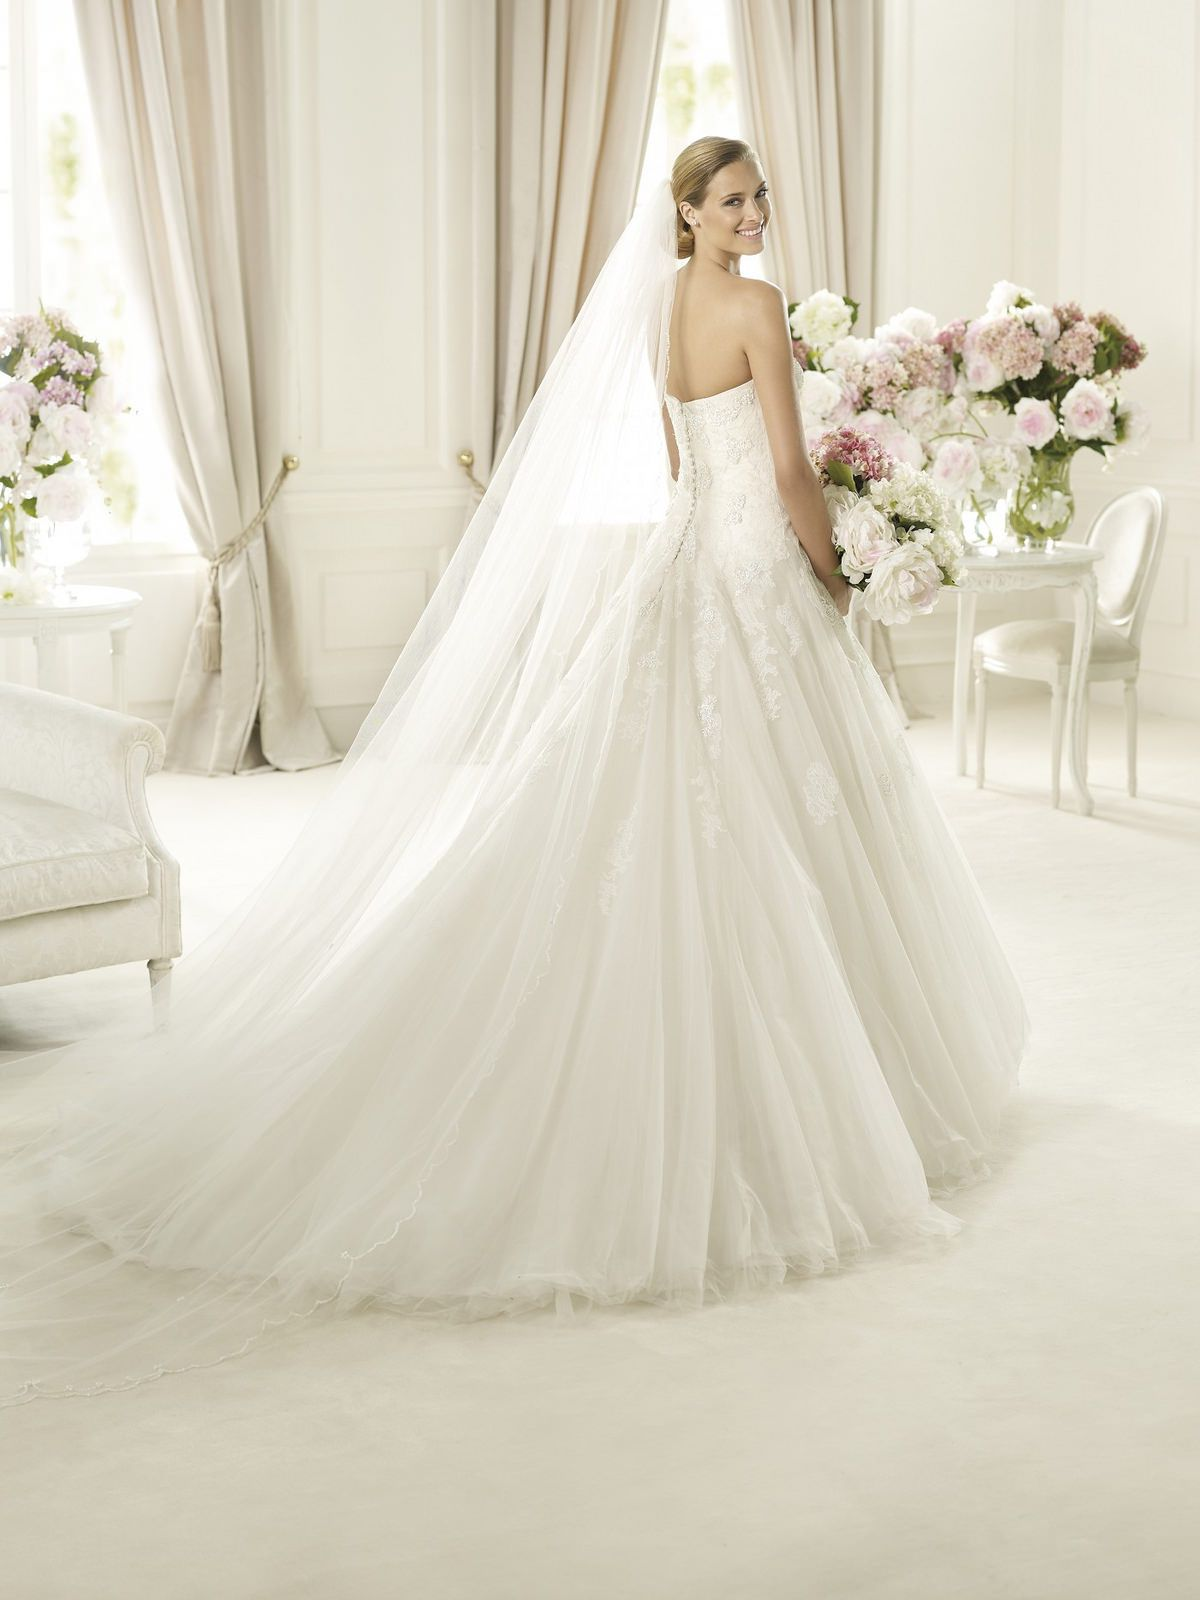 Trouwjurken wedding dress wedding and wedding premier stockists of pronovias wedding dresses with a vast collection of samples to try in our boutique and the option to borrow directly from pronovias ombrellifo Images